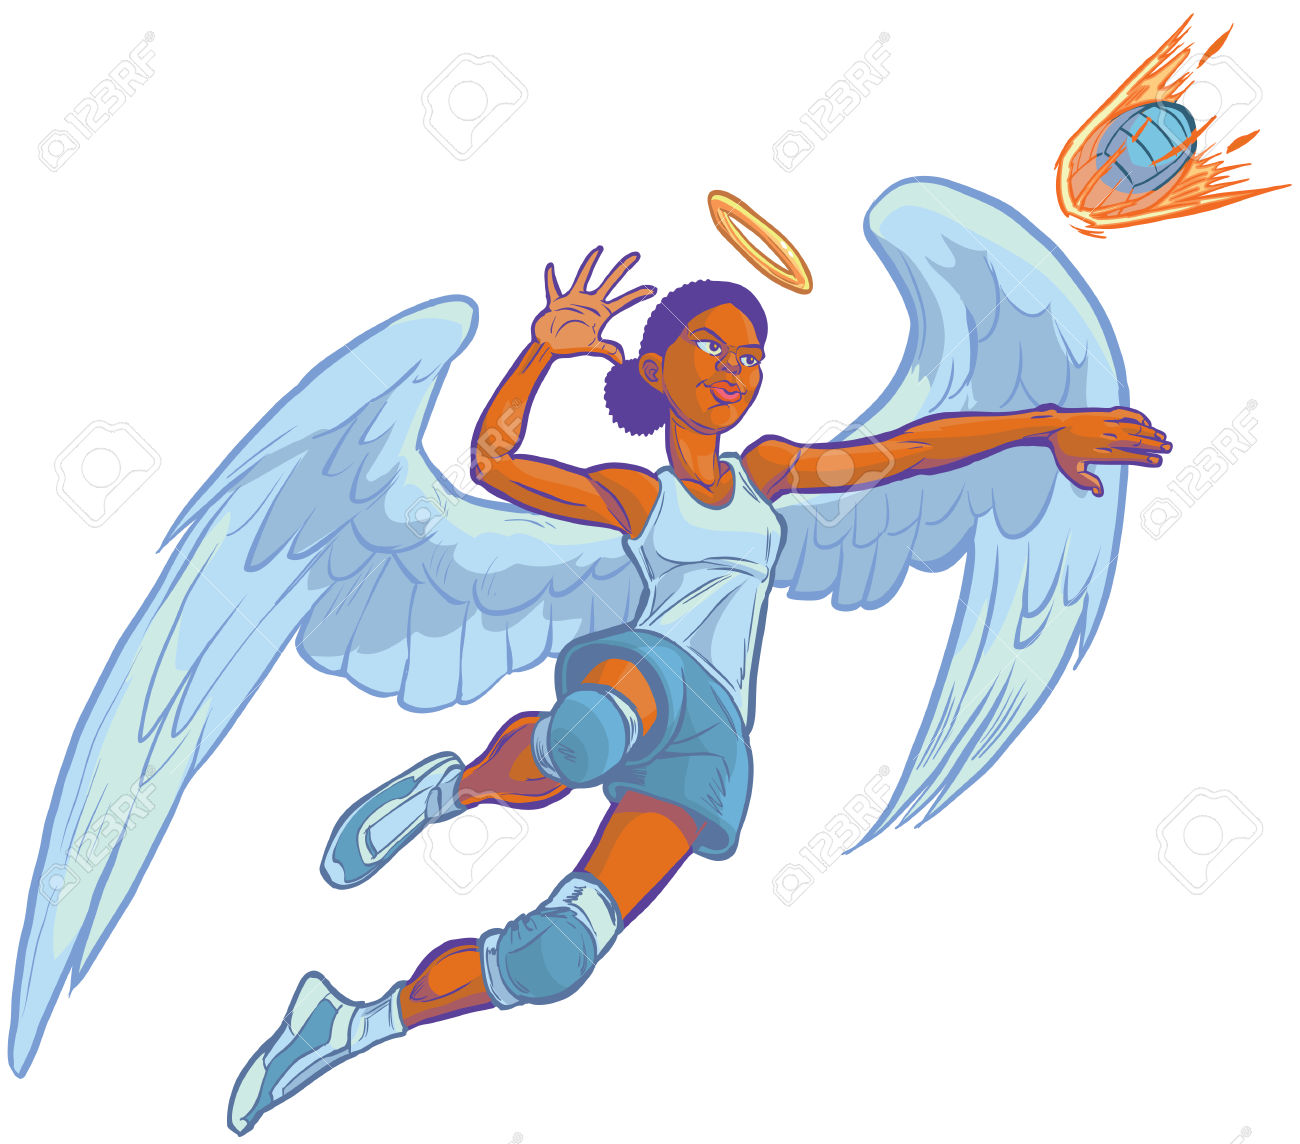 Cartoon Clip Art Illustration Of An African American Girl Angel.